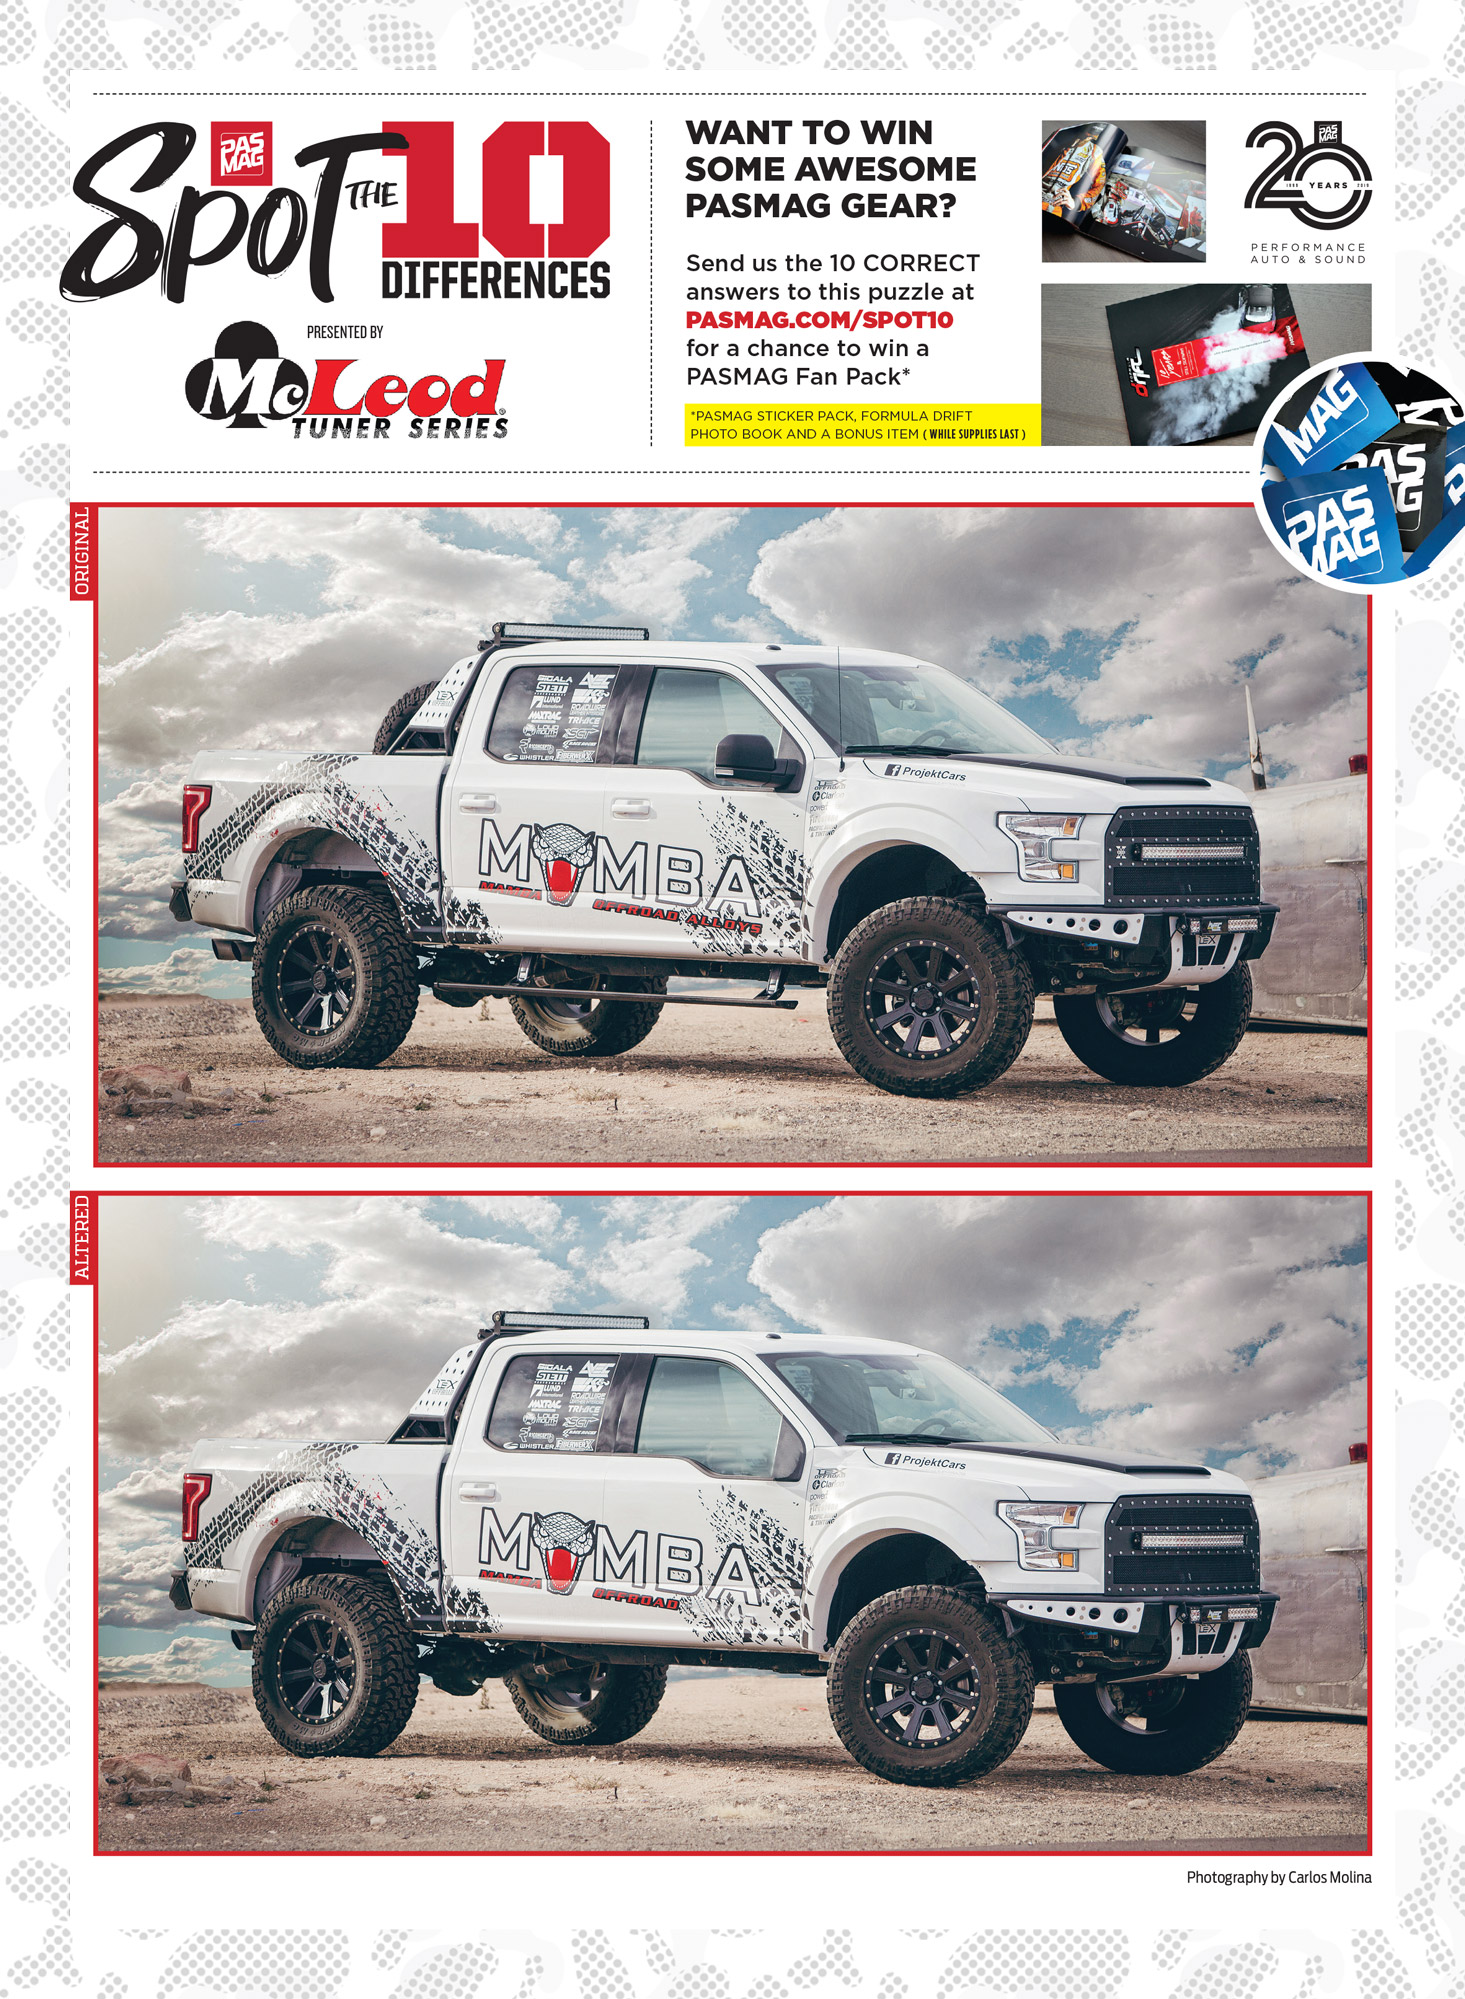 PASMAG Spot the Differences May 18 2020 Alma Molina 2015 Ford F150 EcoBoost pasmag